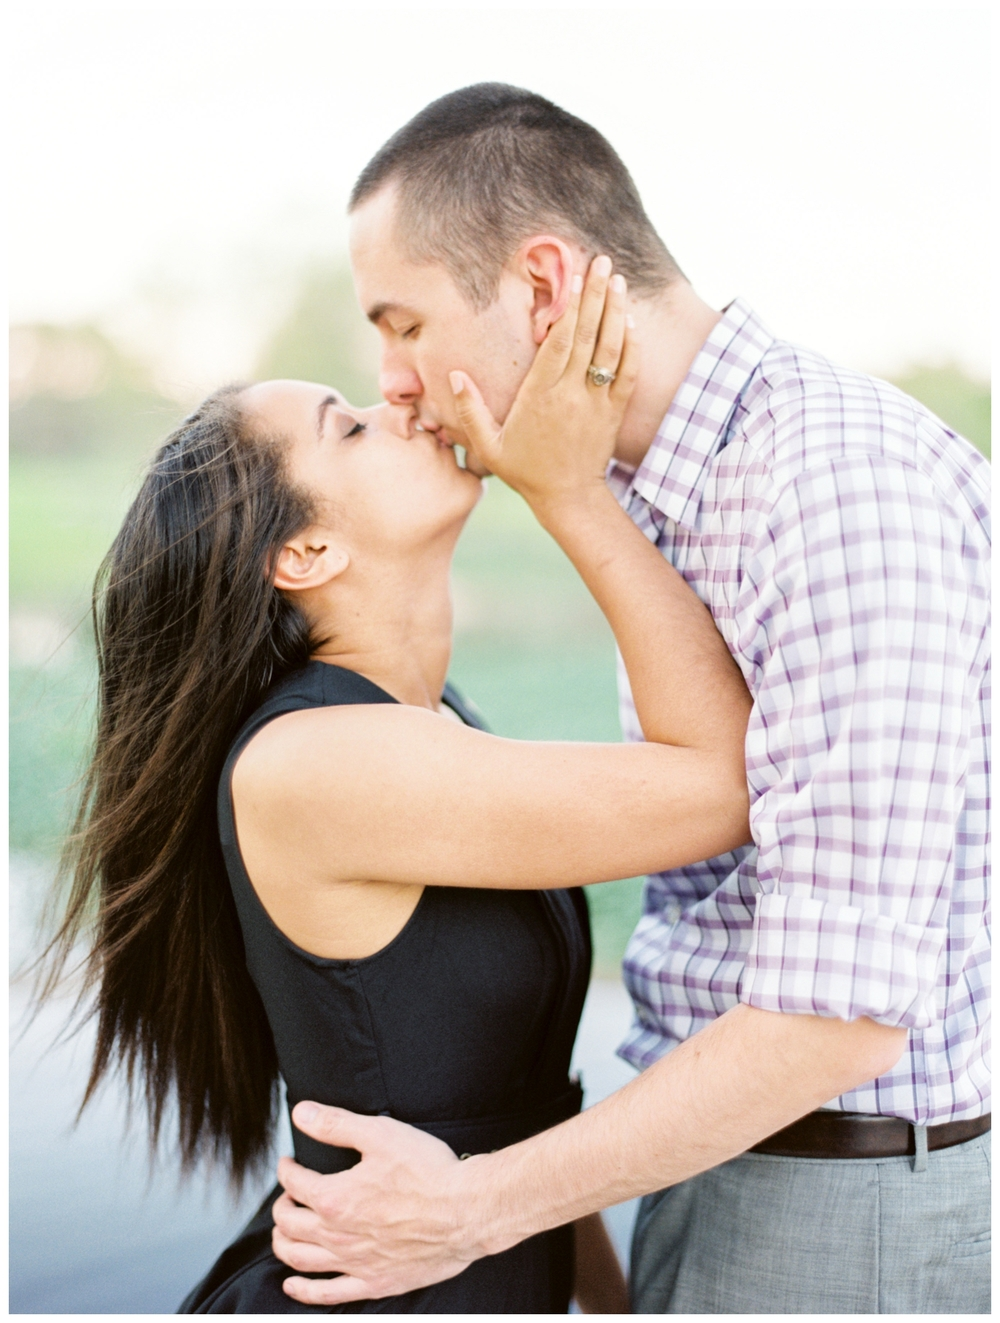 Nyssa & JD Engagements - Rock Lake Ranch - College Station Tx - Film-36_STP.jpg